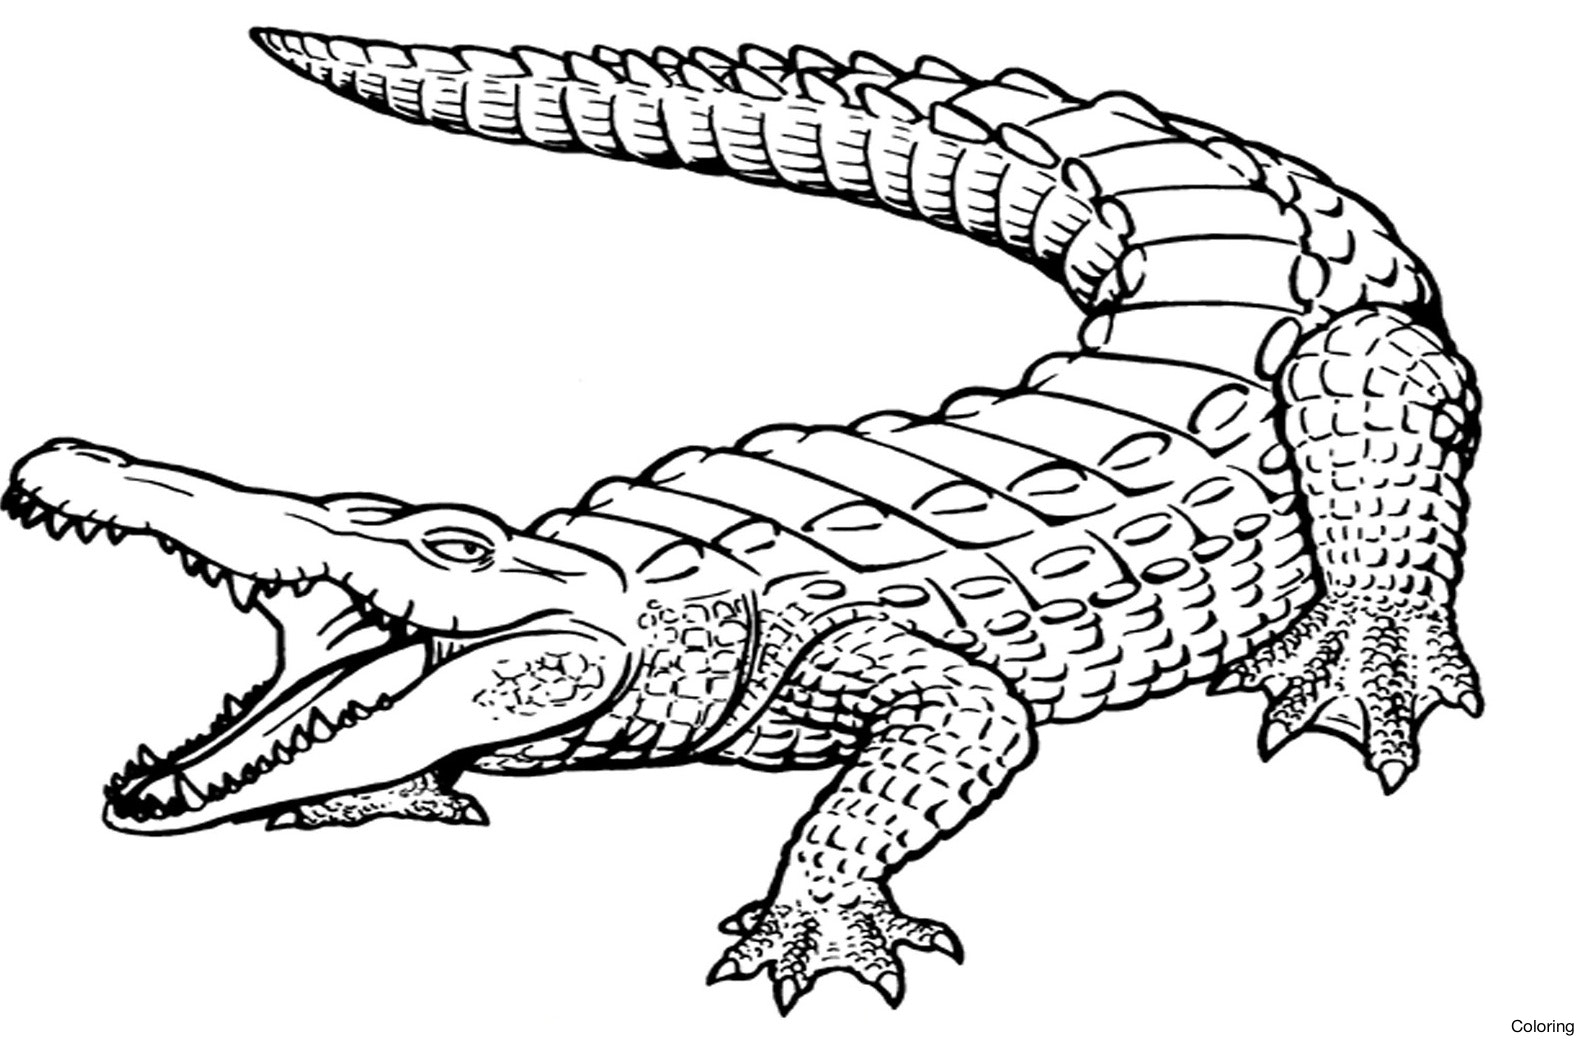 outline picture of crocodile crocodile outline drawing at getdrawings free download outline crocodile of picture